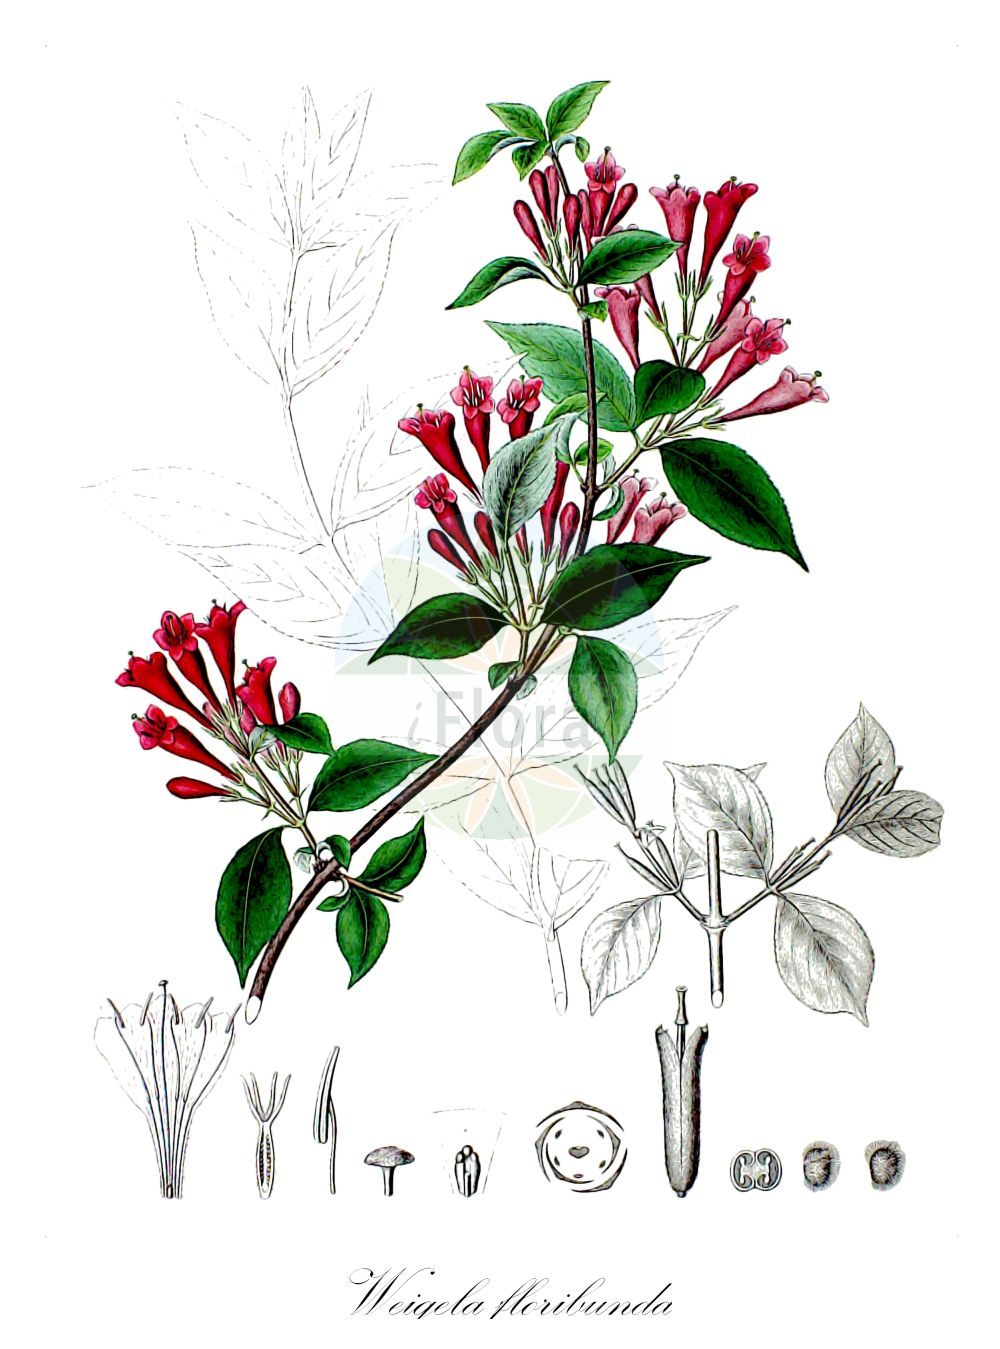 Historische Abbildung von Weigela floribunda. Das Bild zeigt Blatt, Bluete, Frucht und Same. ---- Historical Drawing of Weigela floribunda.The image is showing leaf, flower, fruit and seed.(Weigela floribunda,Diervilla floribunda,,Weigela,Weigelie,Bush Honeysuckle,Caprifoliaceae,Geissblattgewaechse,Honeysuckle family,Blatt,Bluete,Frucht,Same,leaf,flower,fruit,seed,von Siebold & Zuccarini (1835-1875))